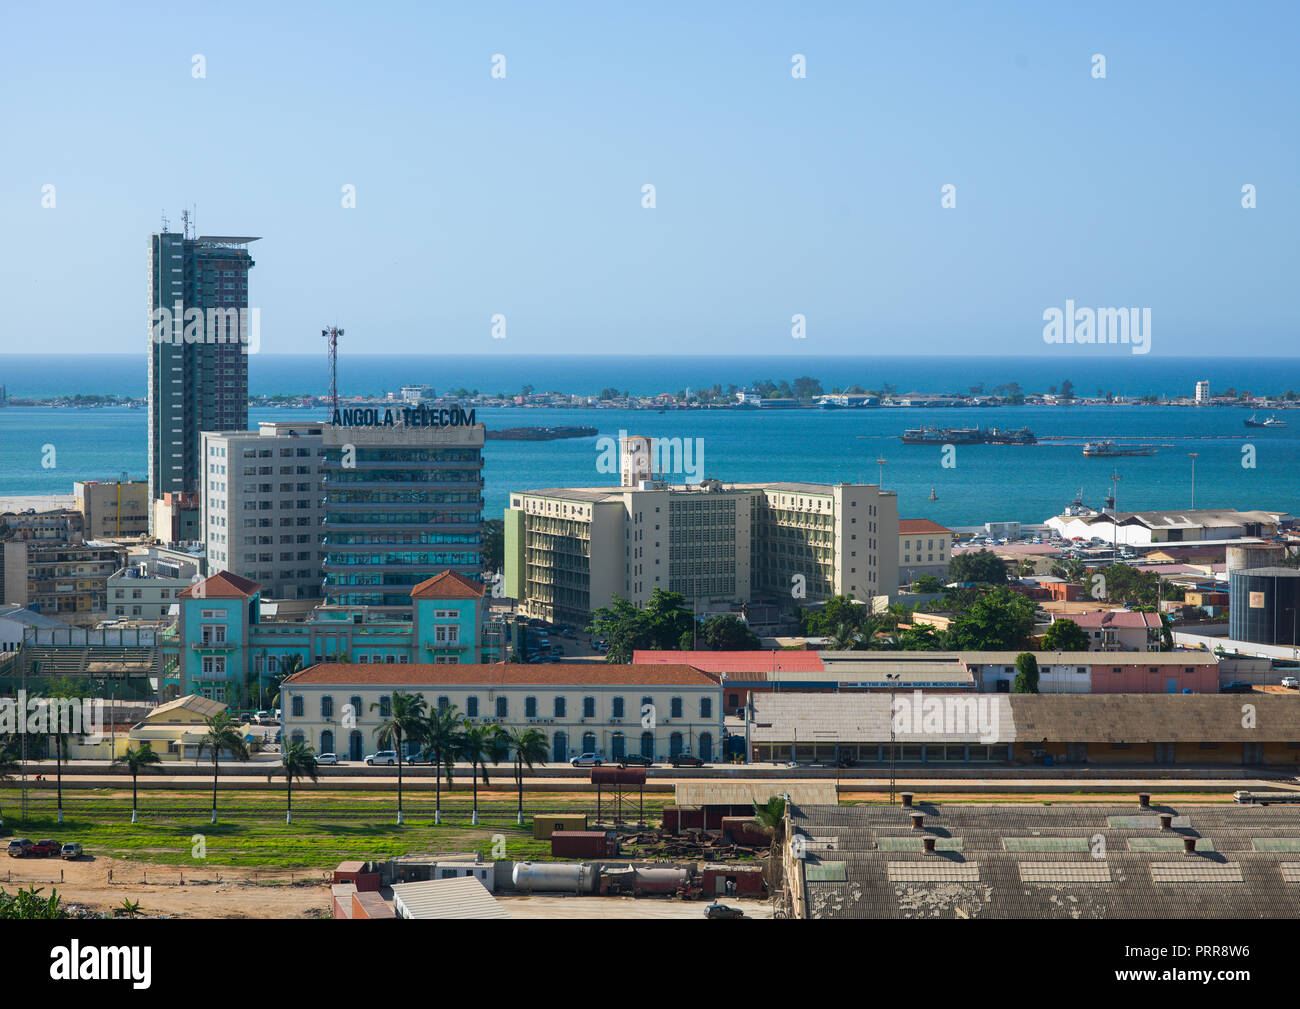 Train station in front of the port, Luanda Province, Luanda, Angola - Stock Image